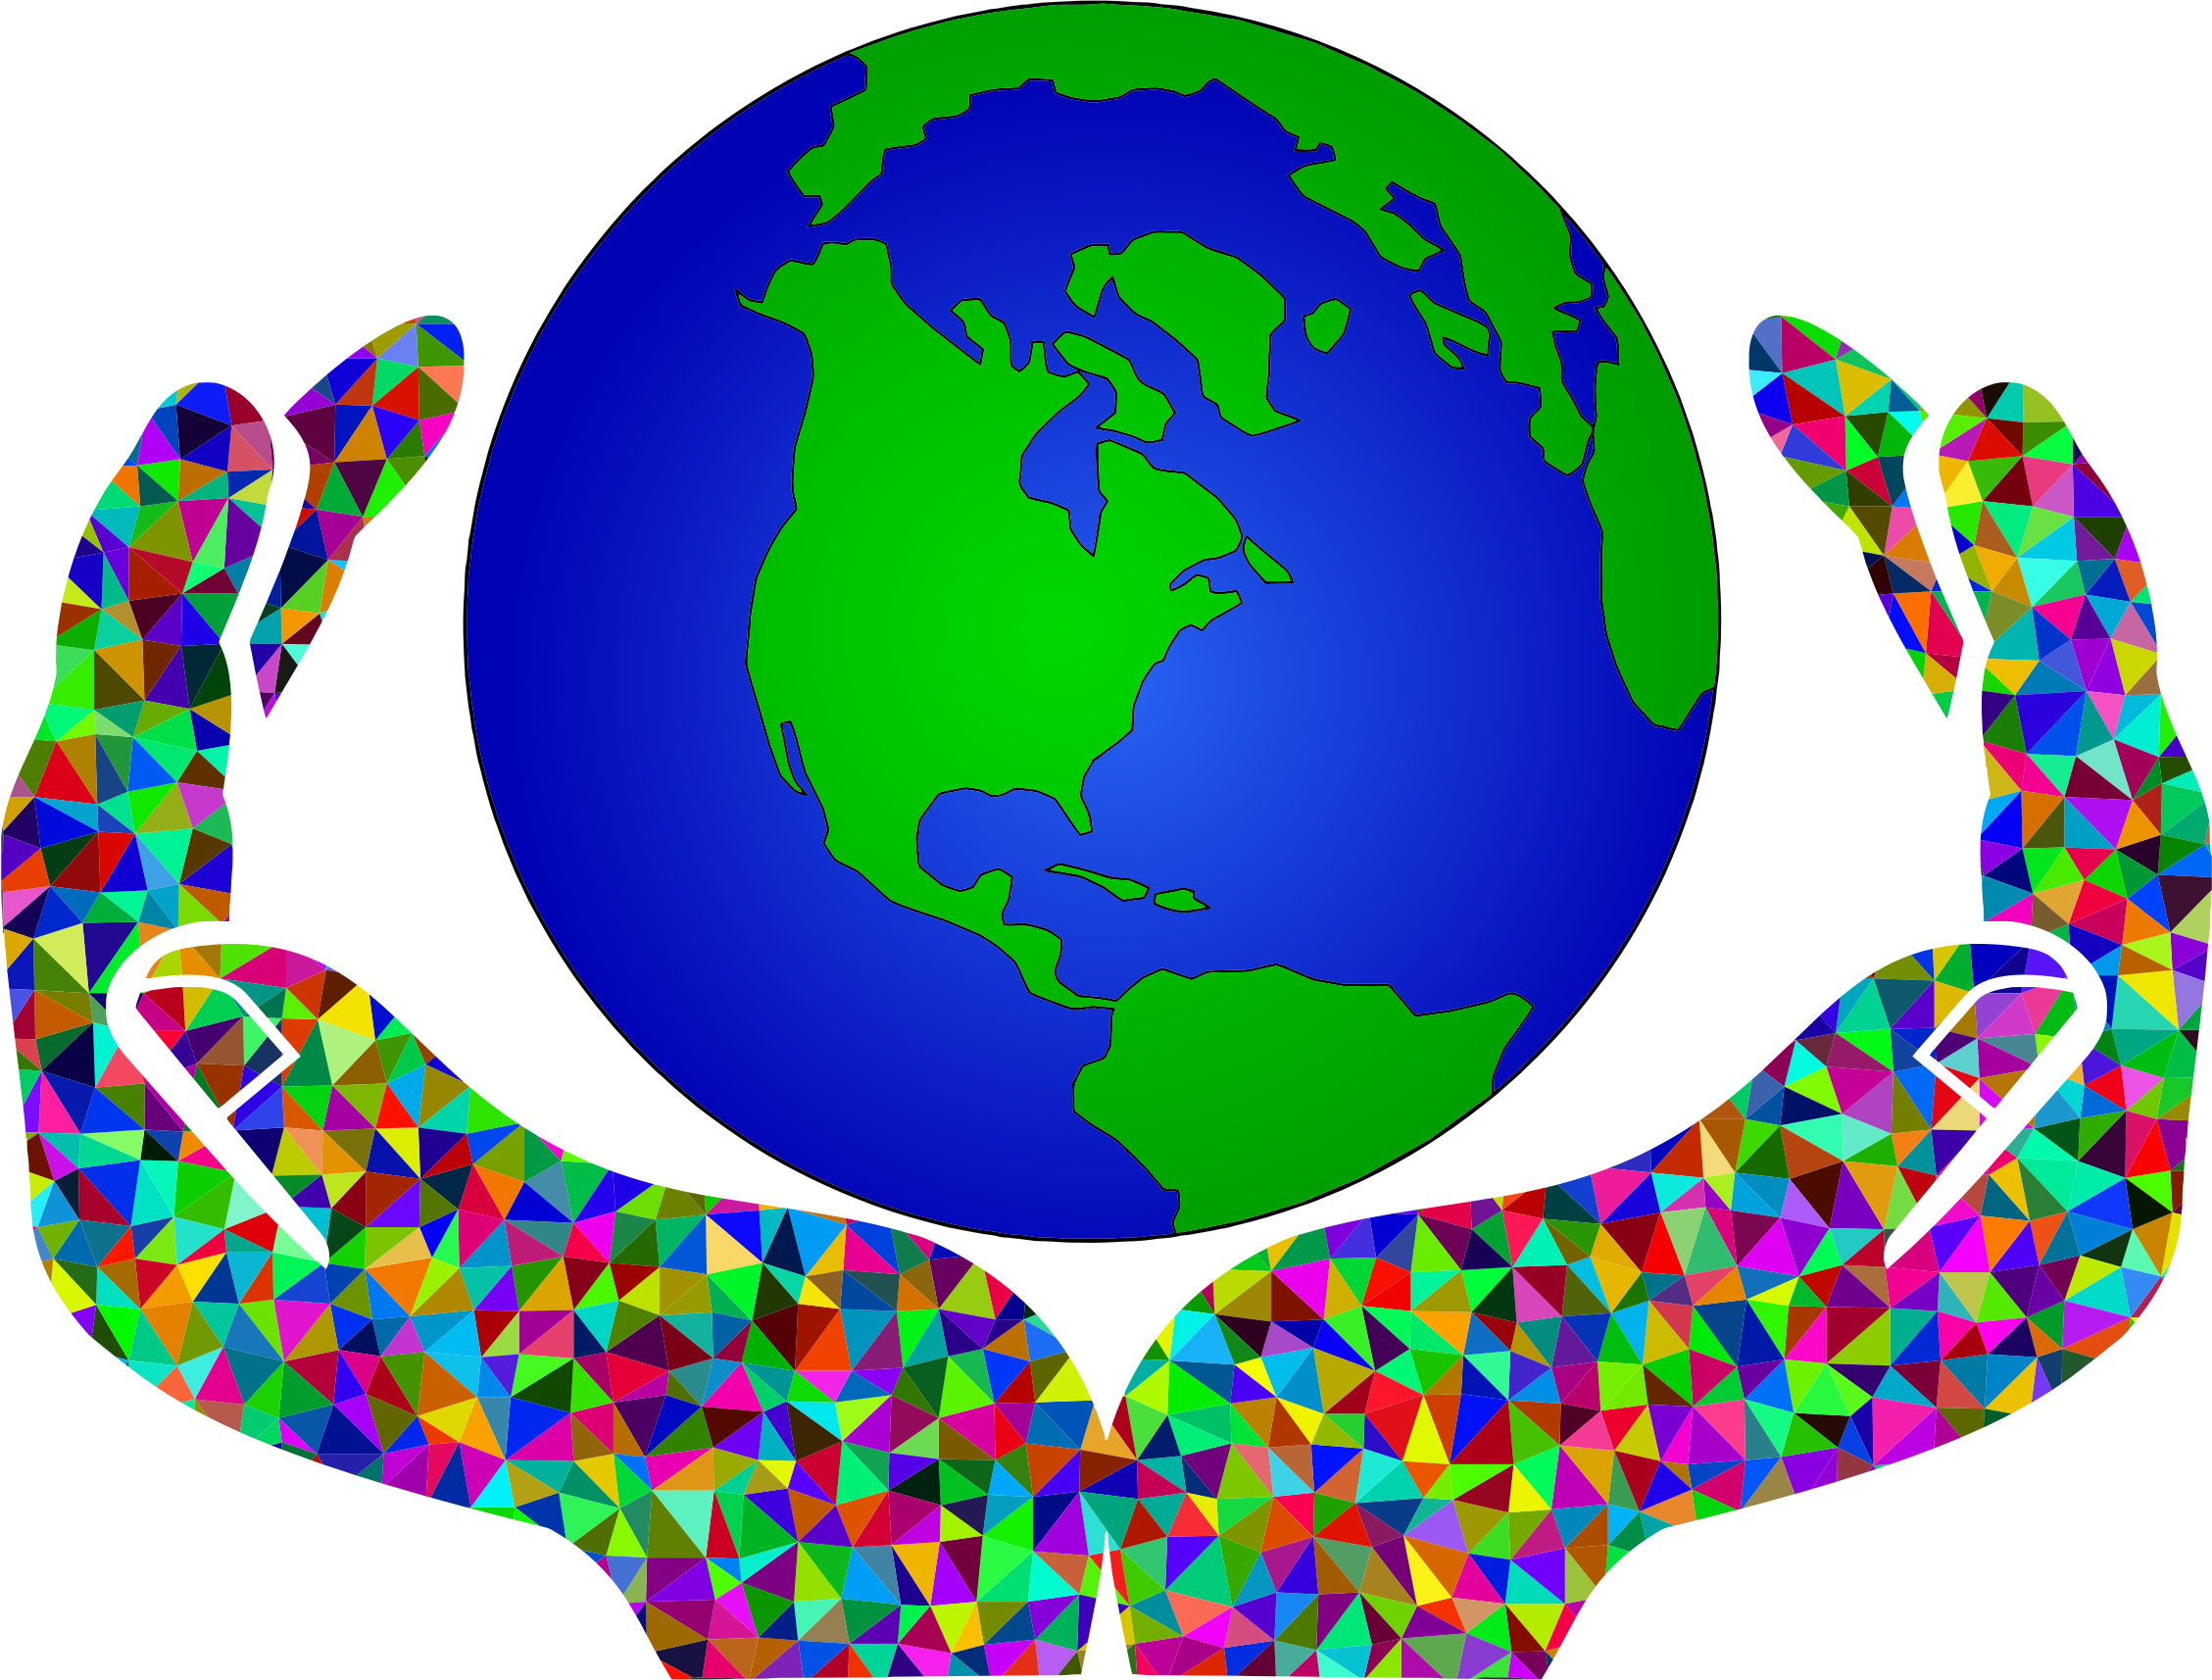 clipart prismatic low poly world in hands 2 planet earth clip art floating in space planet earth clip art floating in space